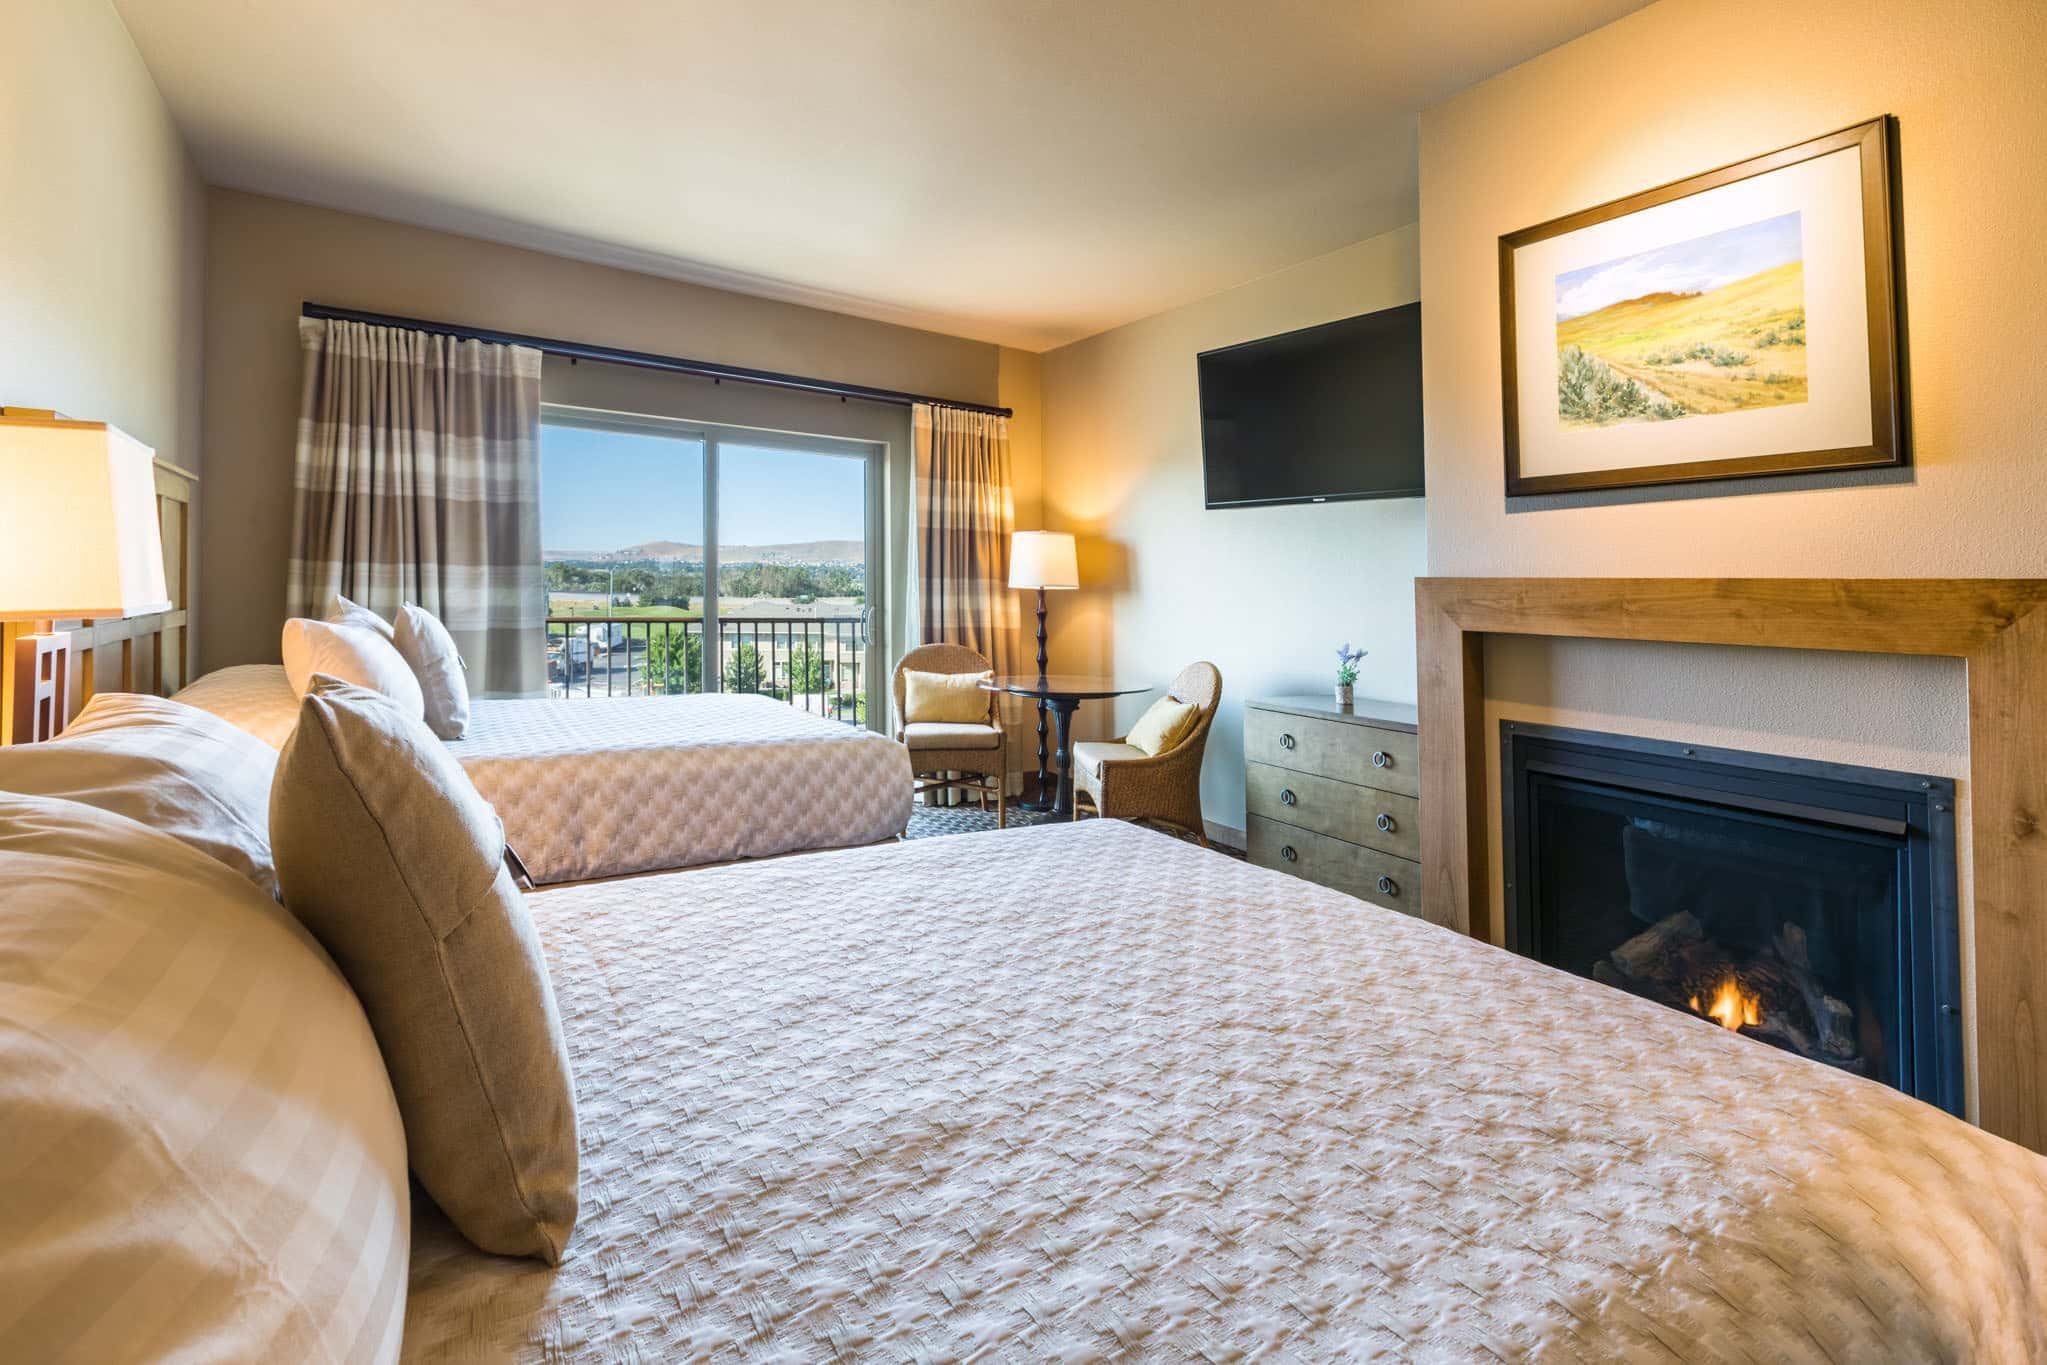 Our guest room with two queen beds overlooking the mountains in Richland, WA